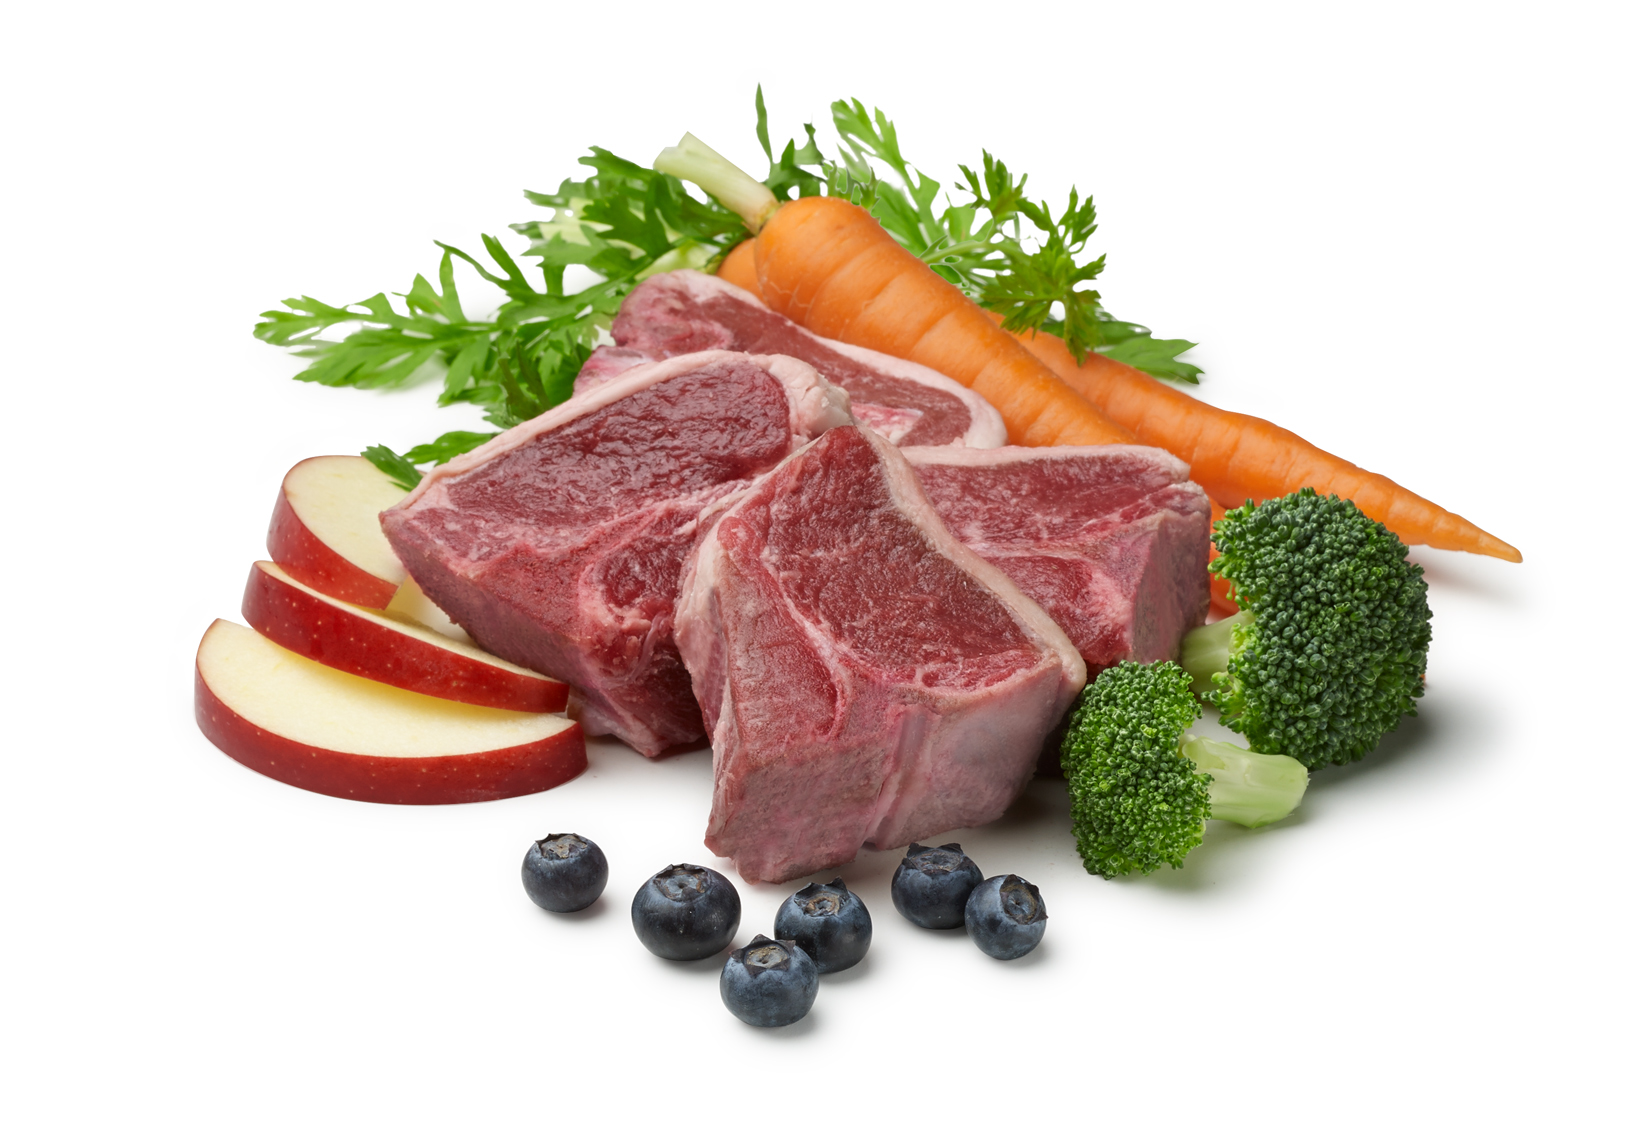 Lamb and vegetables for ingredients